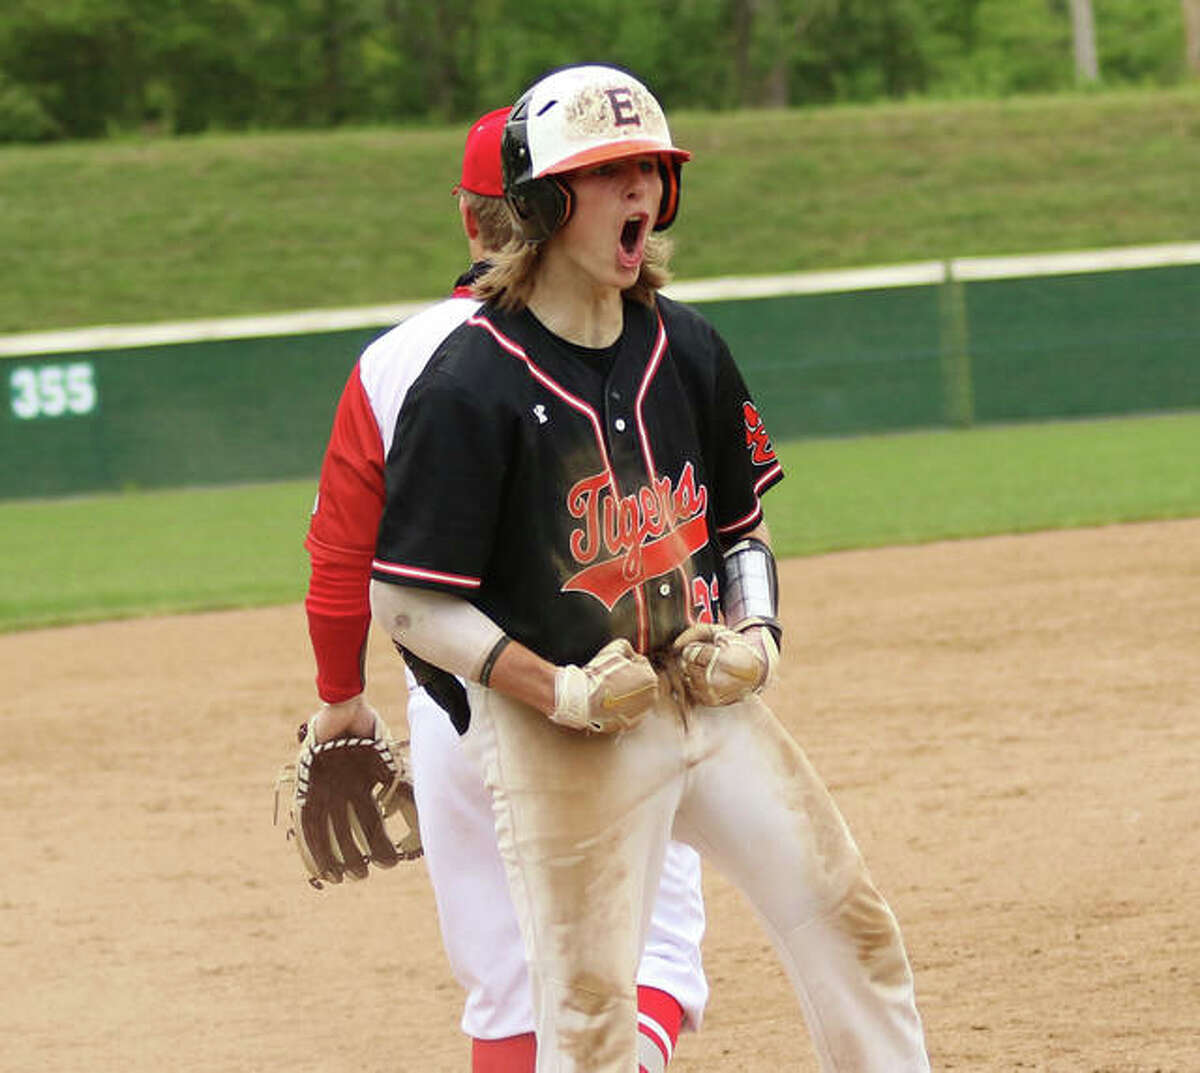 Edwardsville's Grant Huebner reacts with teammates in the dugout after his bases-loaded triple drove in three runs to start the scoring in the Tigers' 10-run fourth inning against Alton on Saturday morning in a SWC baseball game at Alton High in Godfrey.